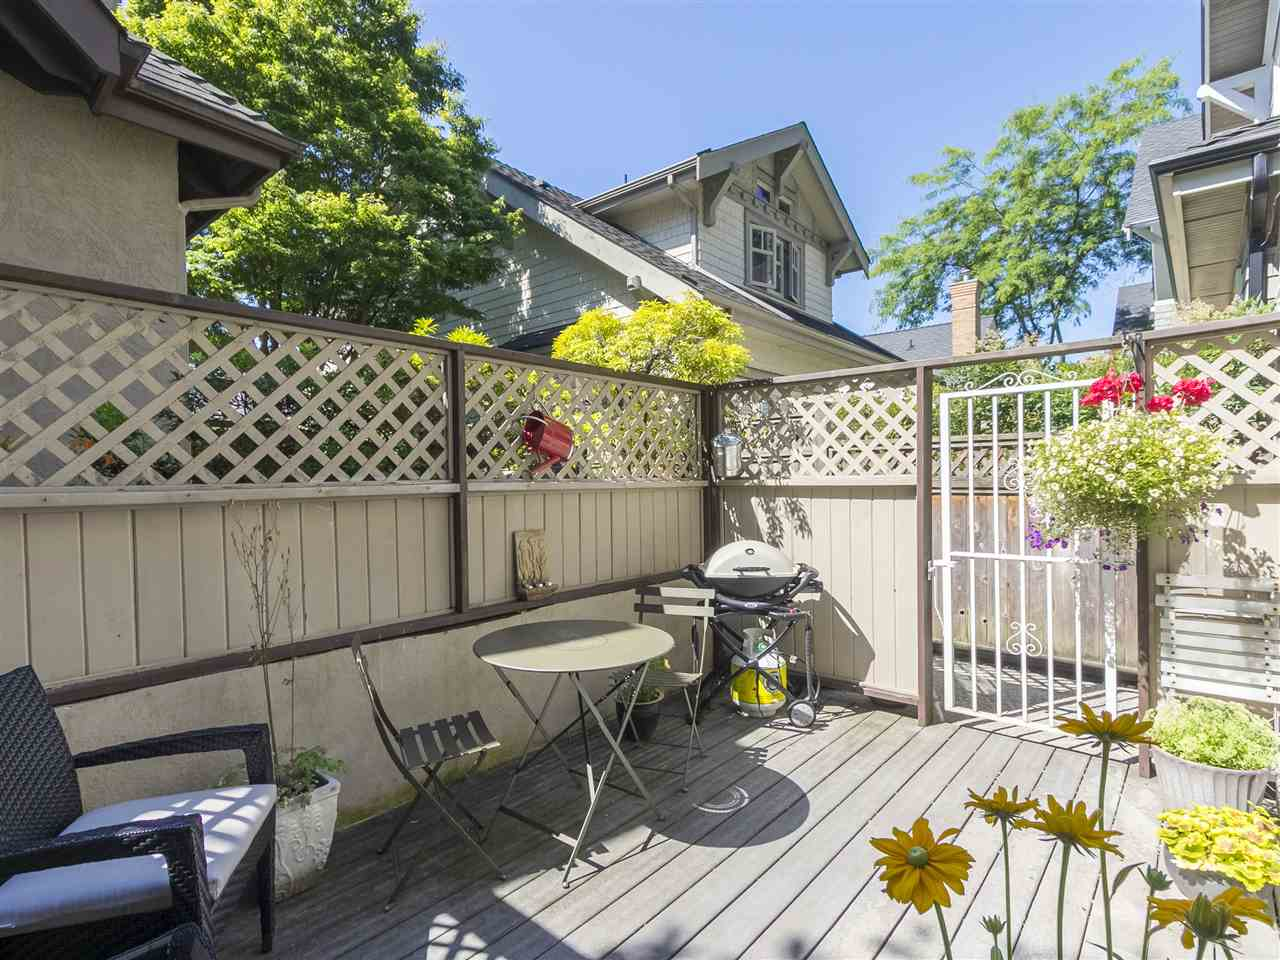 Photo 8: 314 W 15TH Avenue in Vancouver: Mount Pleasant VW Townhouse for sale (Vancouver West)  : MLS(r) # R2186637